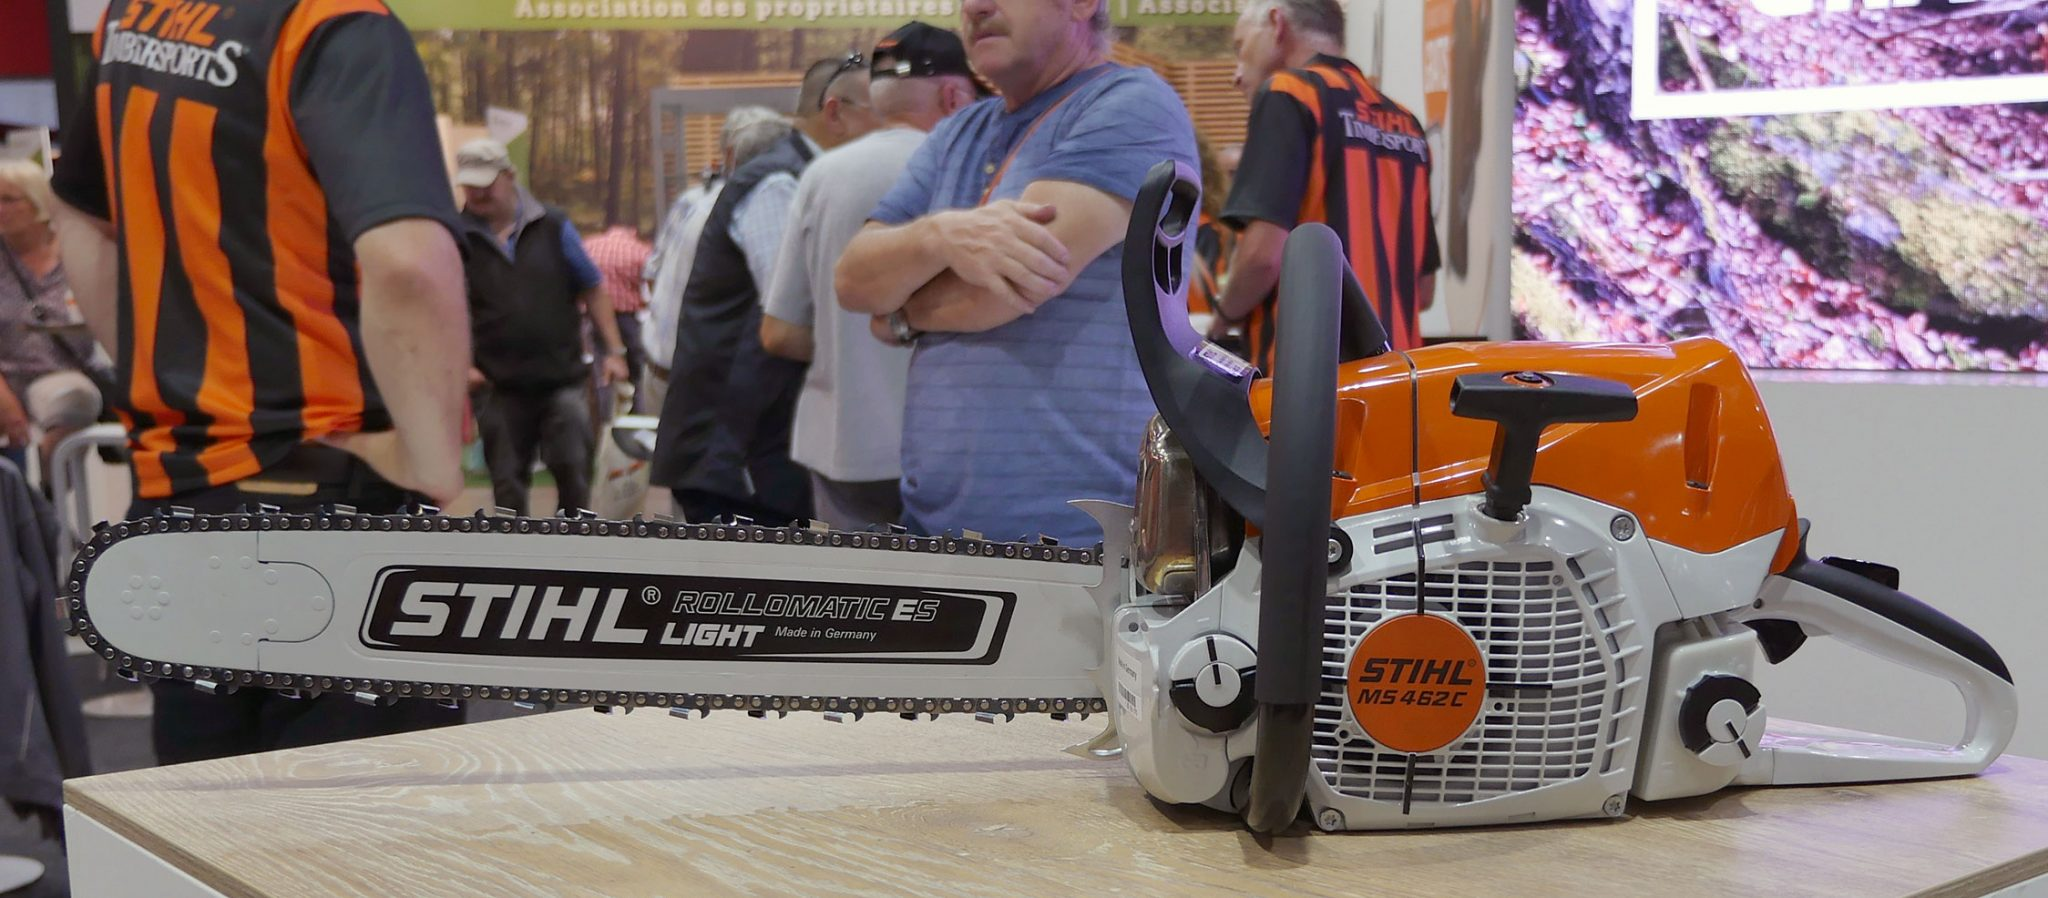 stihl ms 462 - new 72cc chainsaw from stihl | forestry